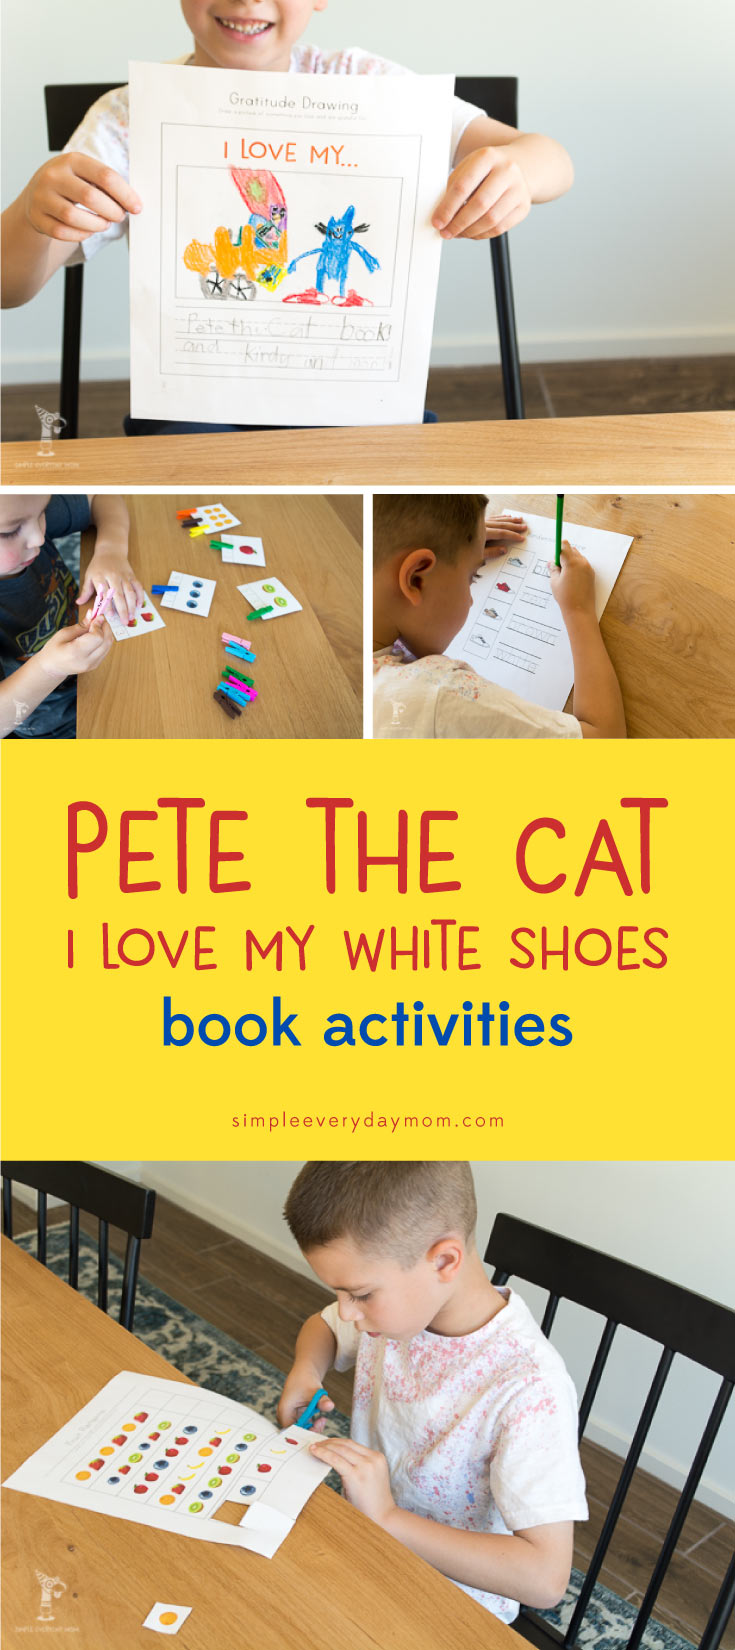 pete the cat activities | childrens books | printables for kids